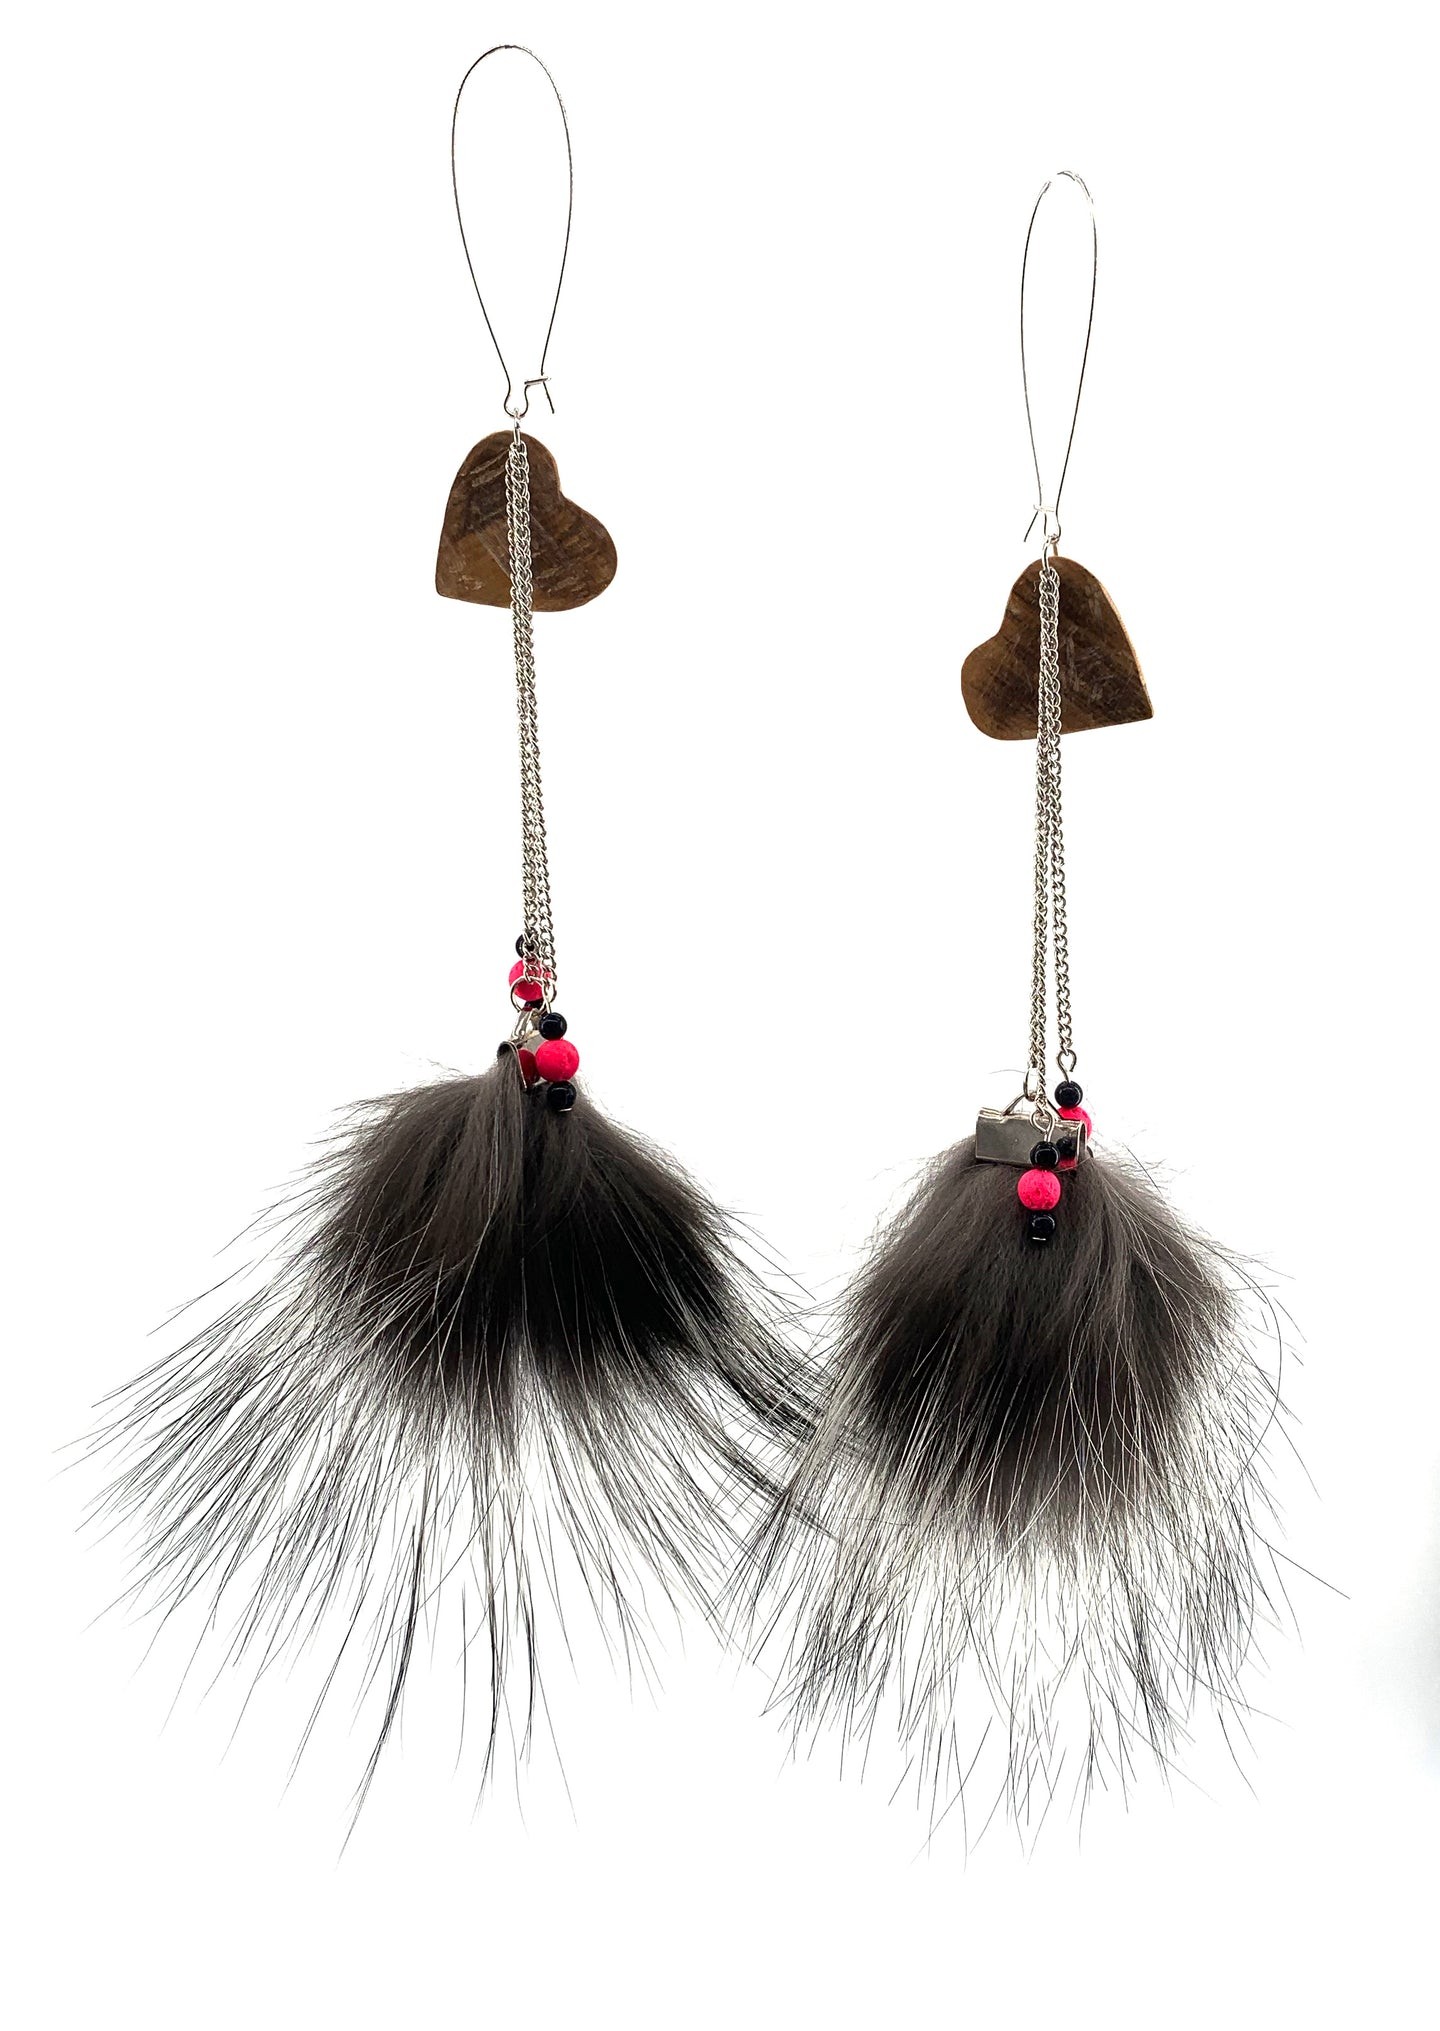 Pompom Earrings by Natasha Peter